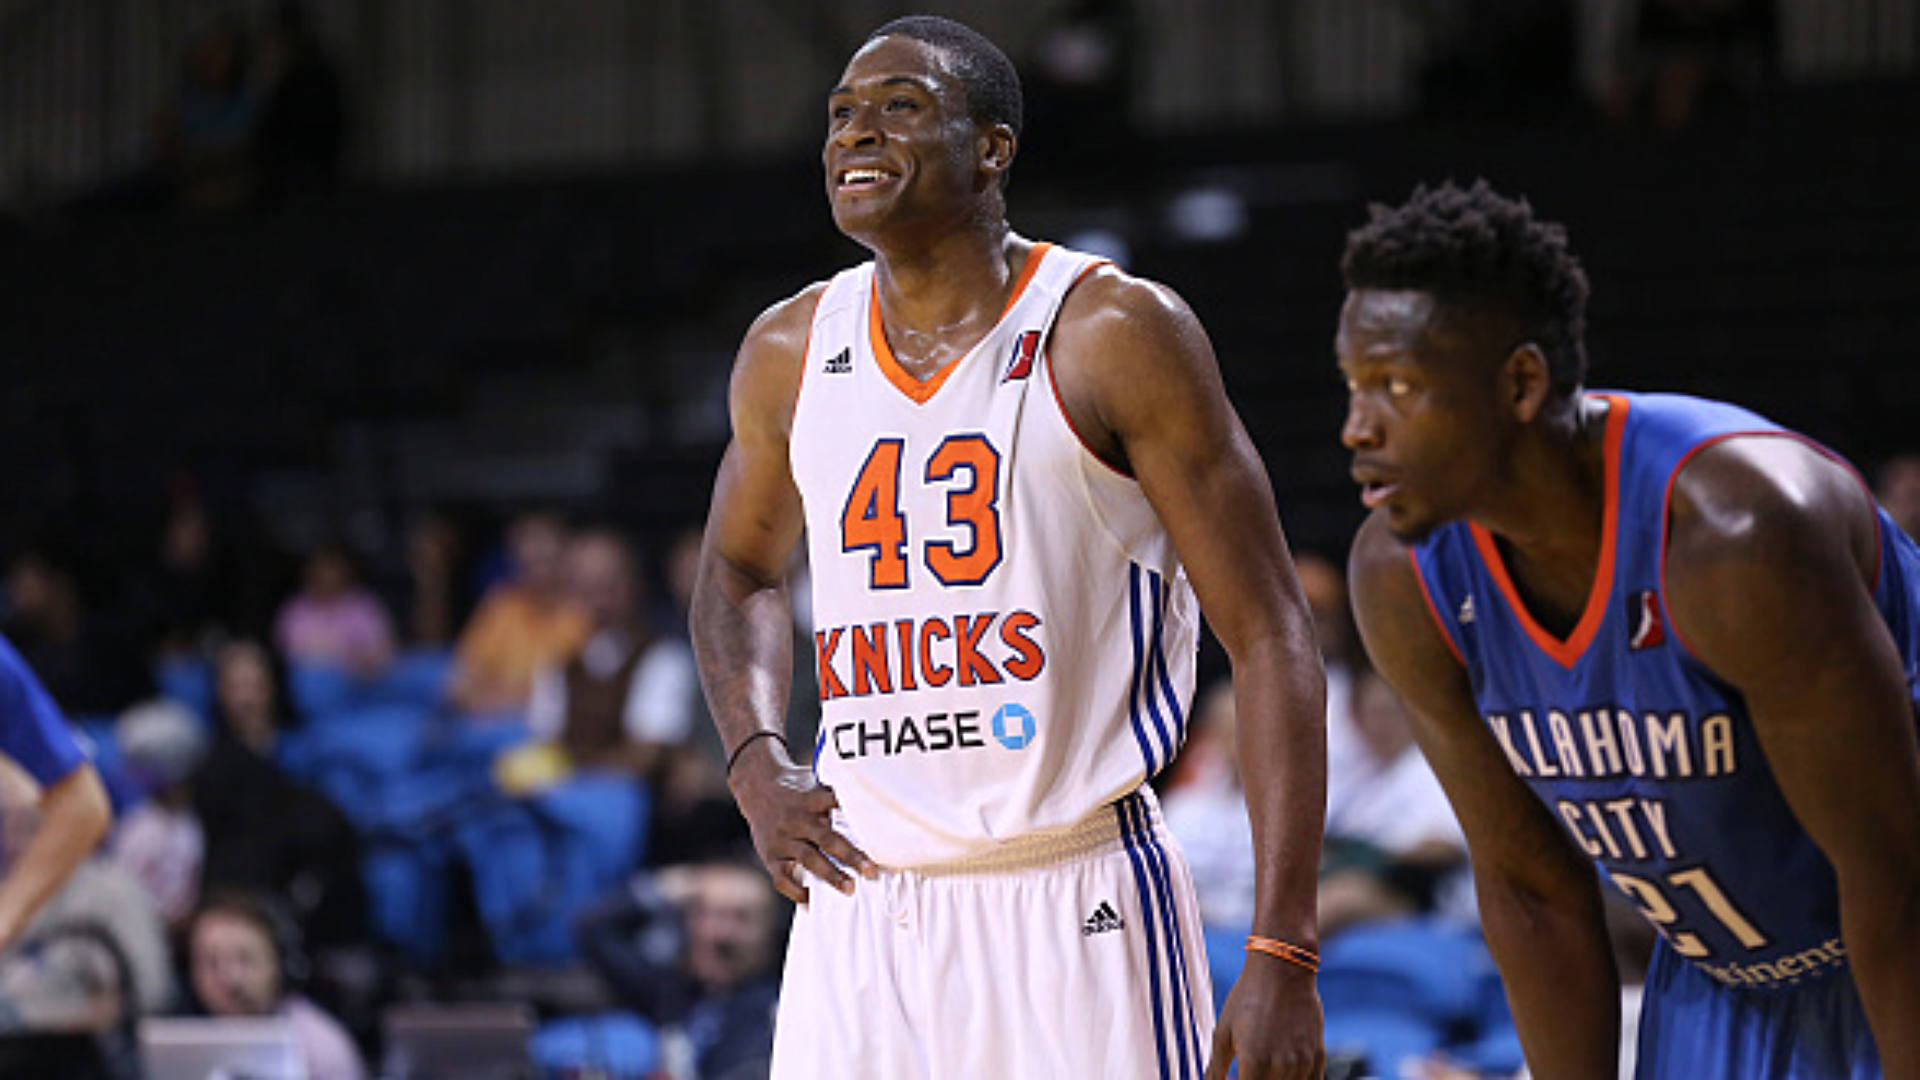 Thanasis-Antetokounmpo-012115-FTR-Getty.jpg